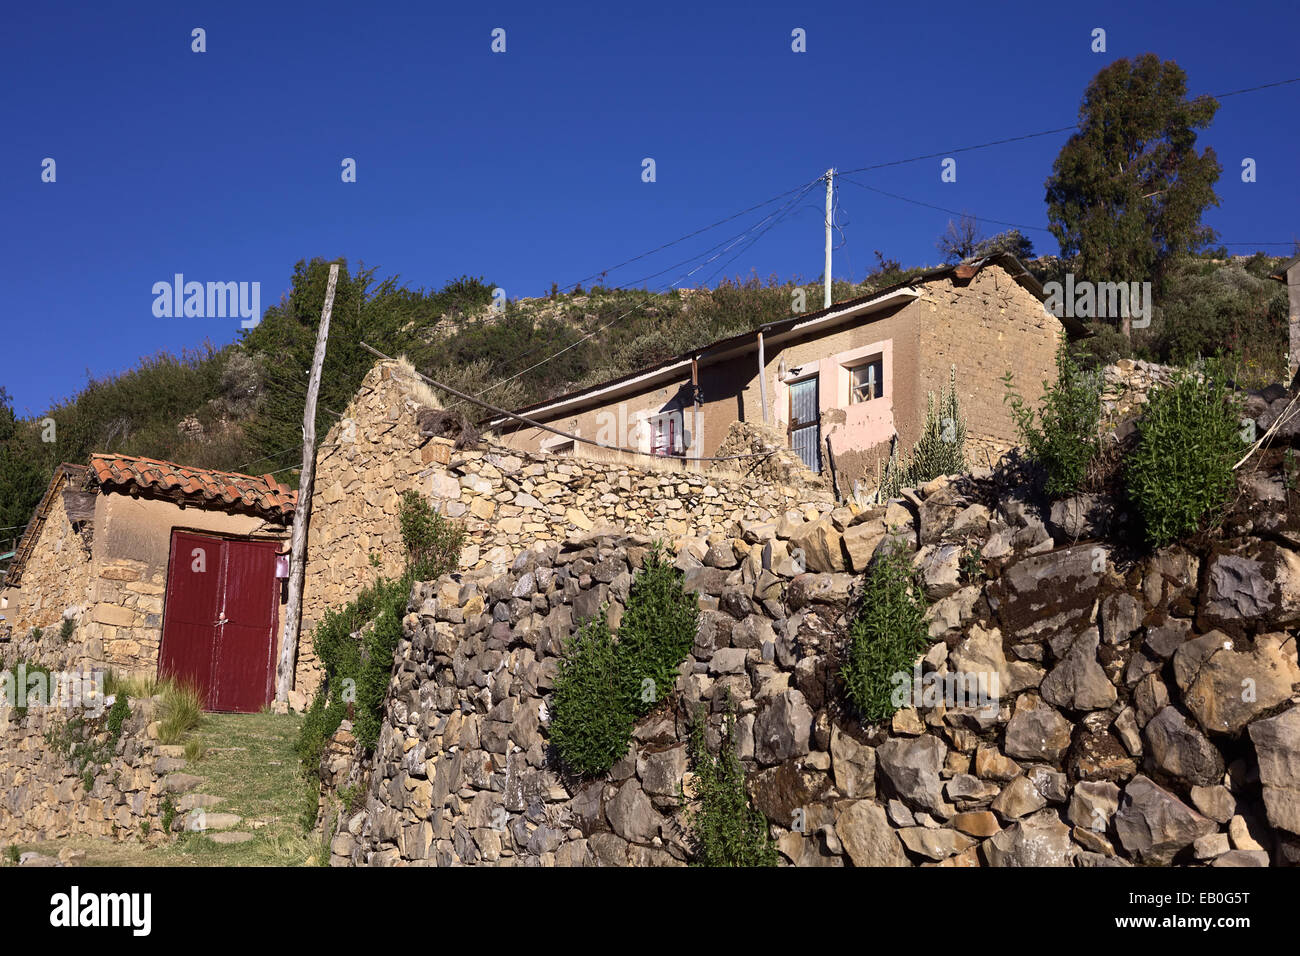 Old stone walls and an adobe brick house in the small for American brick and stone